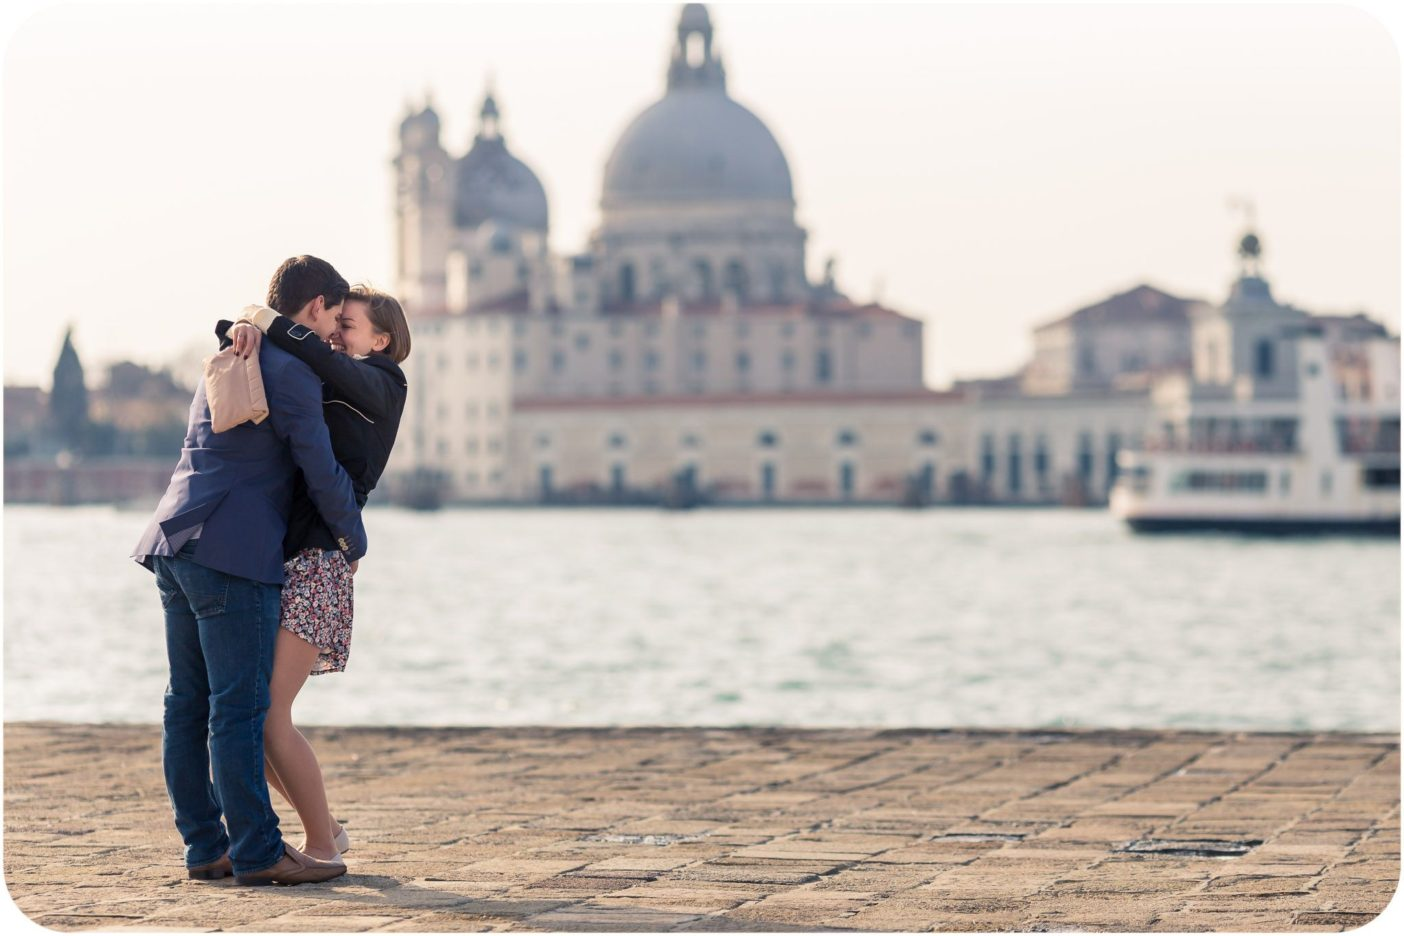 couple hug during wedding proposal photo reportage in Venice